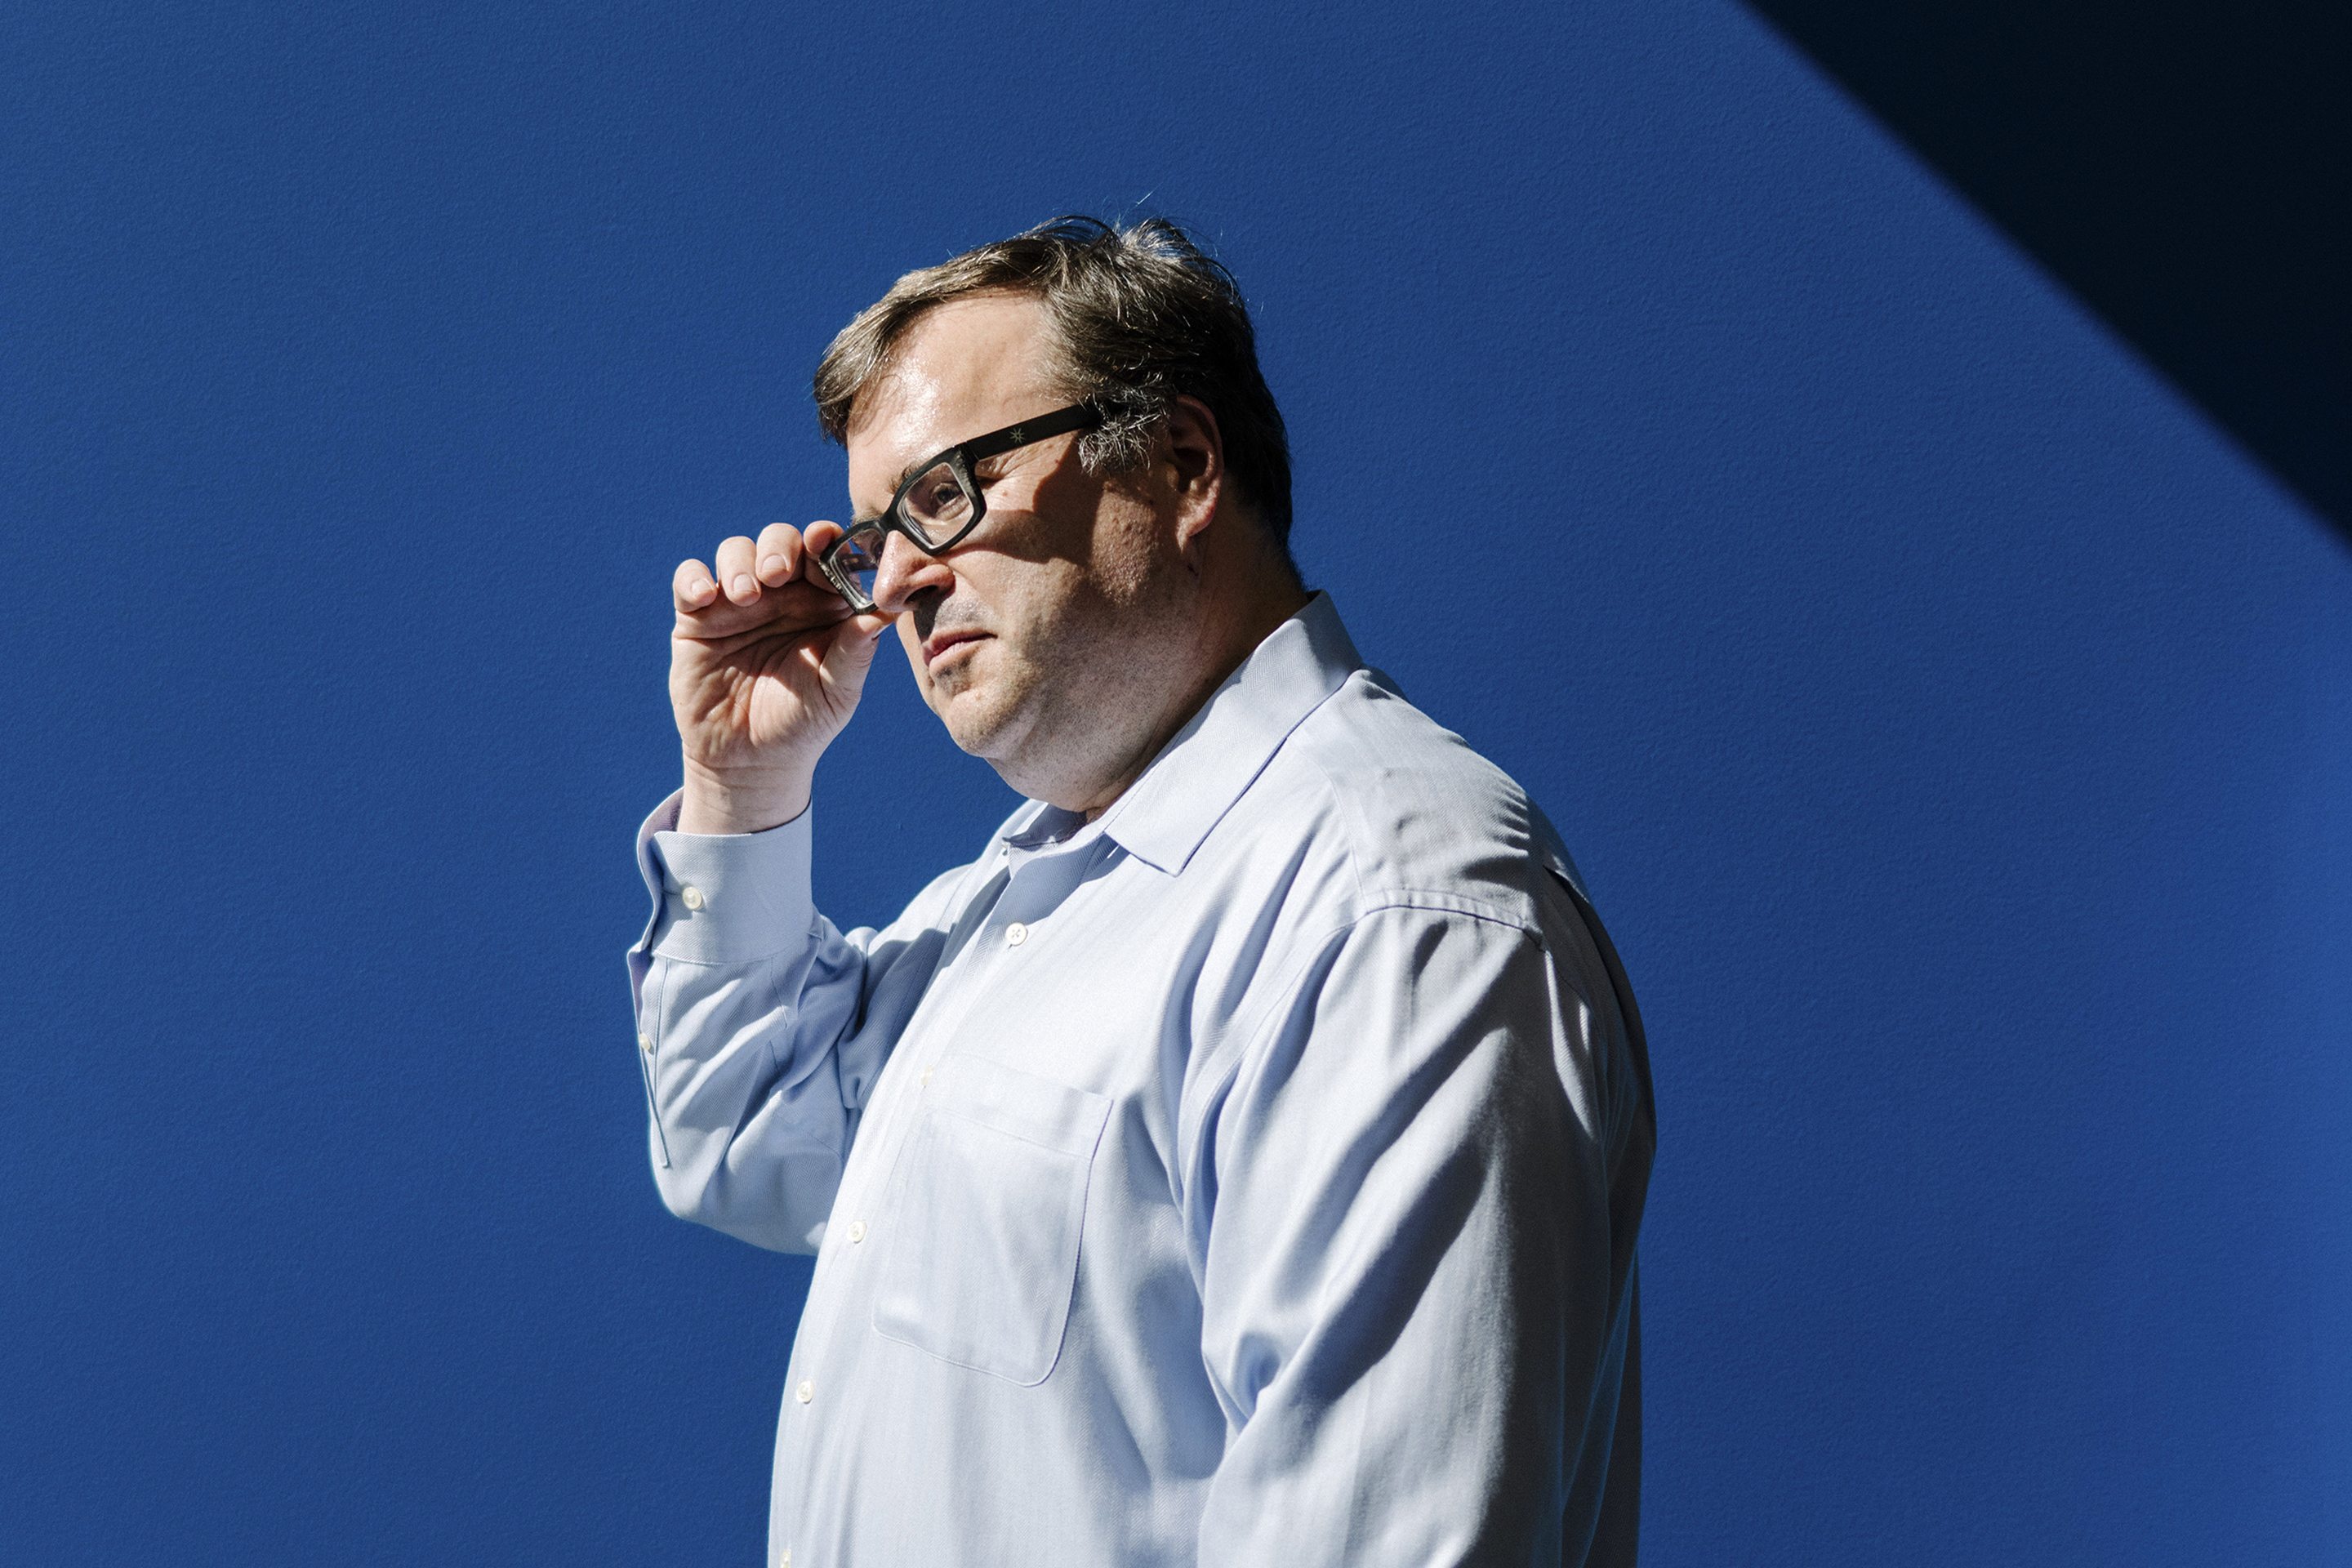 Reid Hoffman, who founded LinkedIn, at the company's offices in Sunnyvale, Calif.